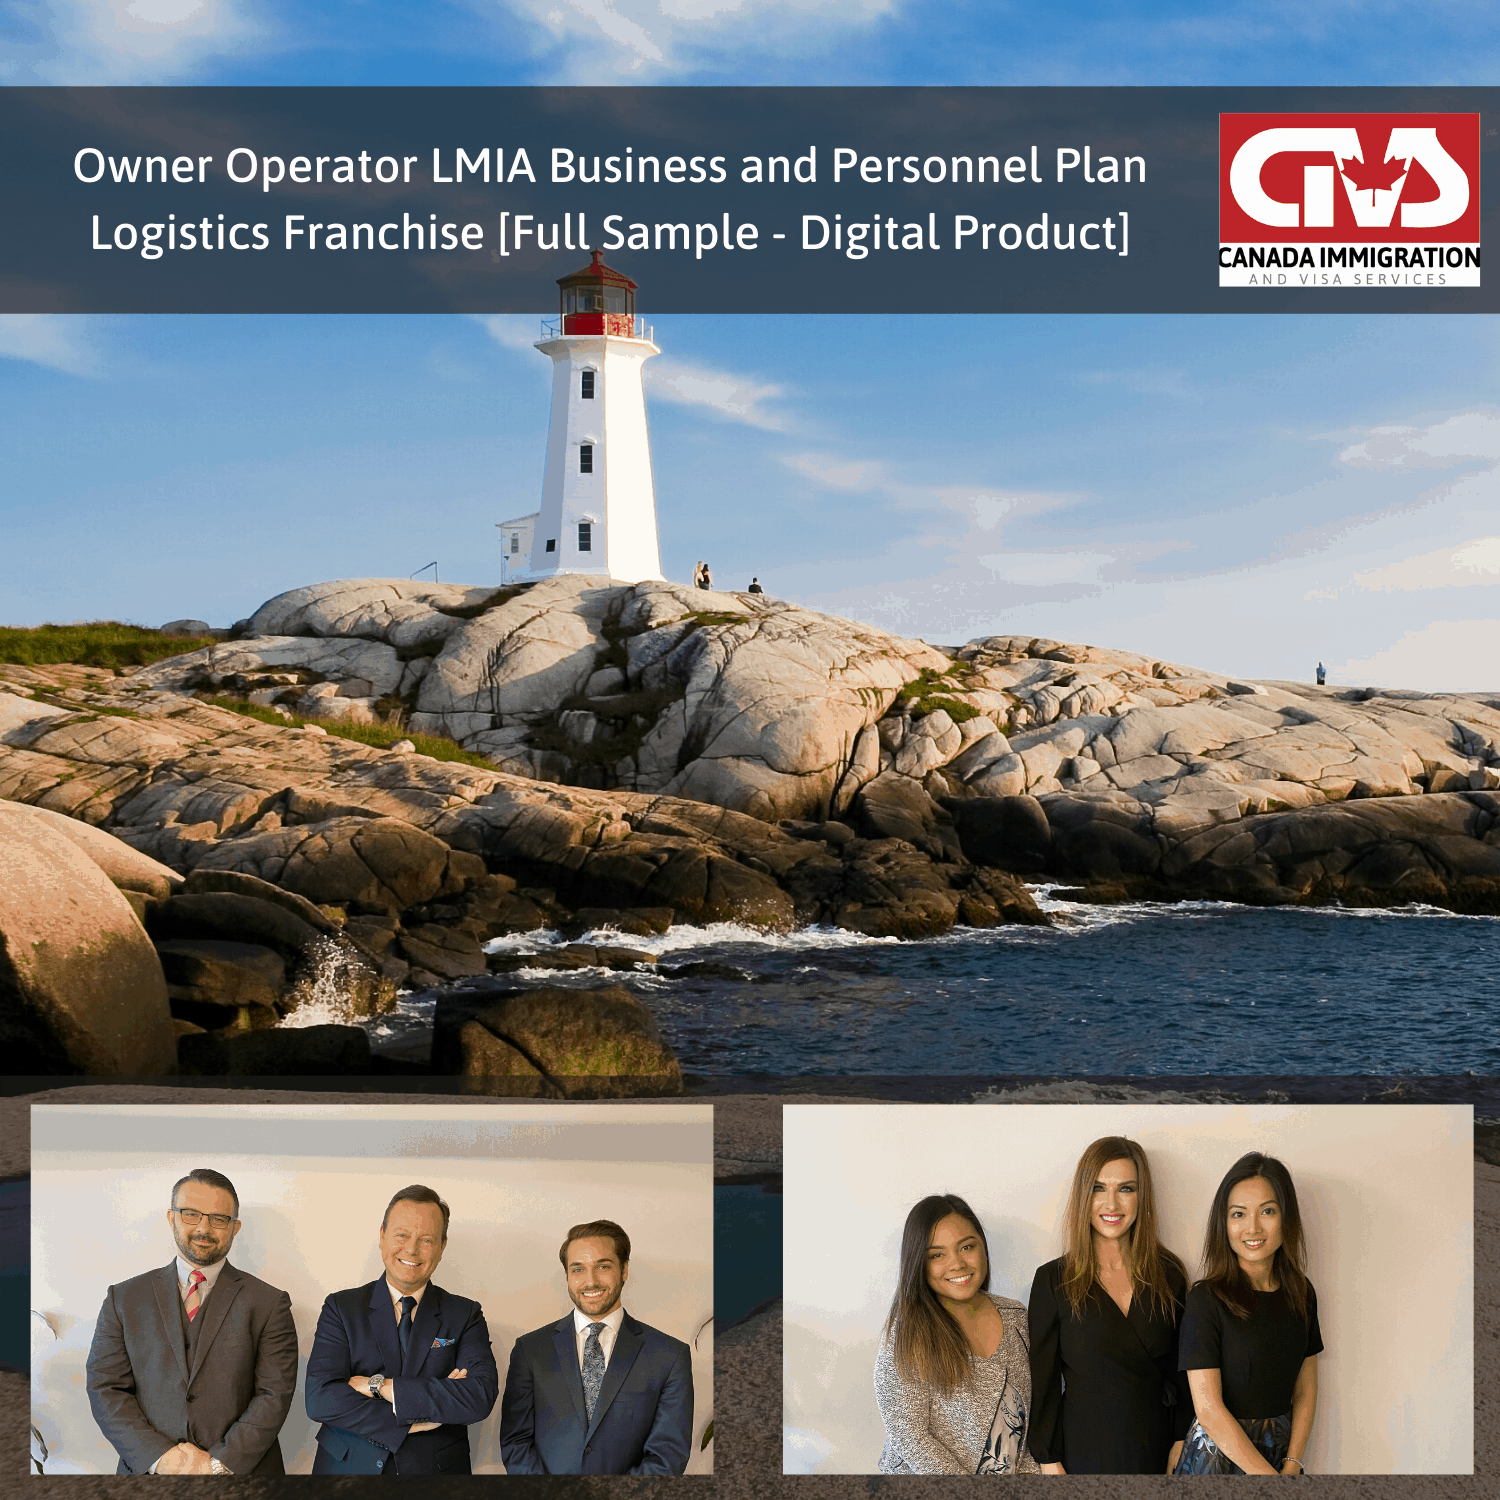 Owner Operator LMIA Business Plan Logistics Franchise